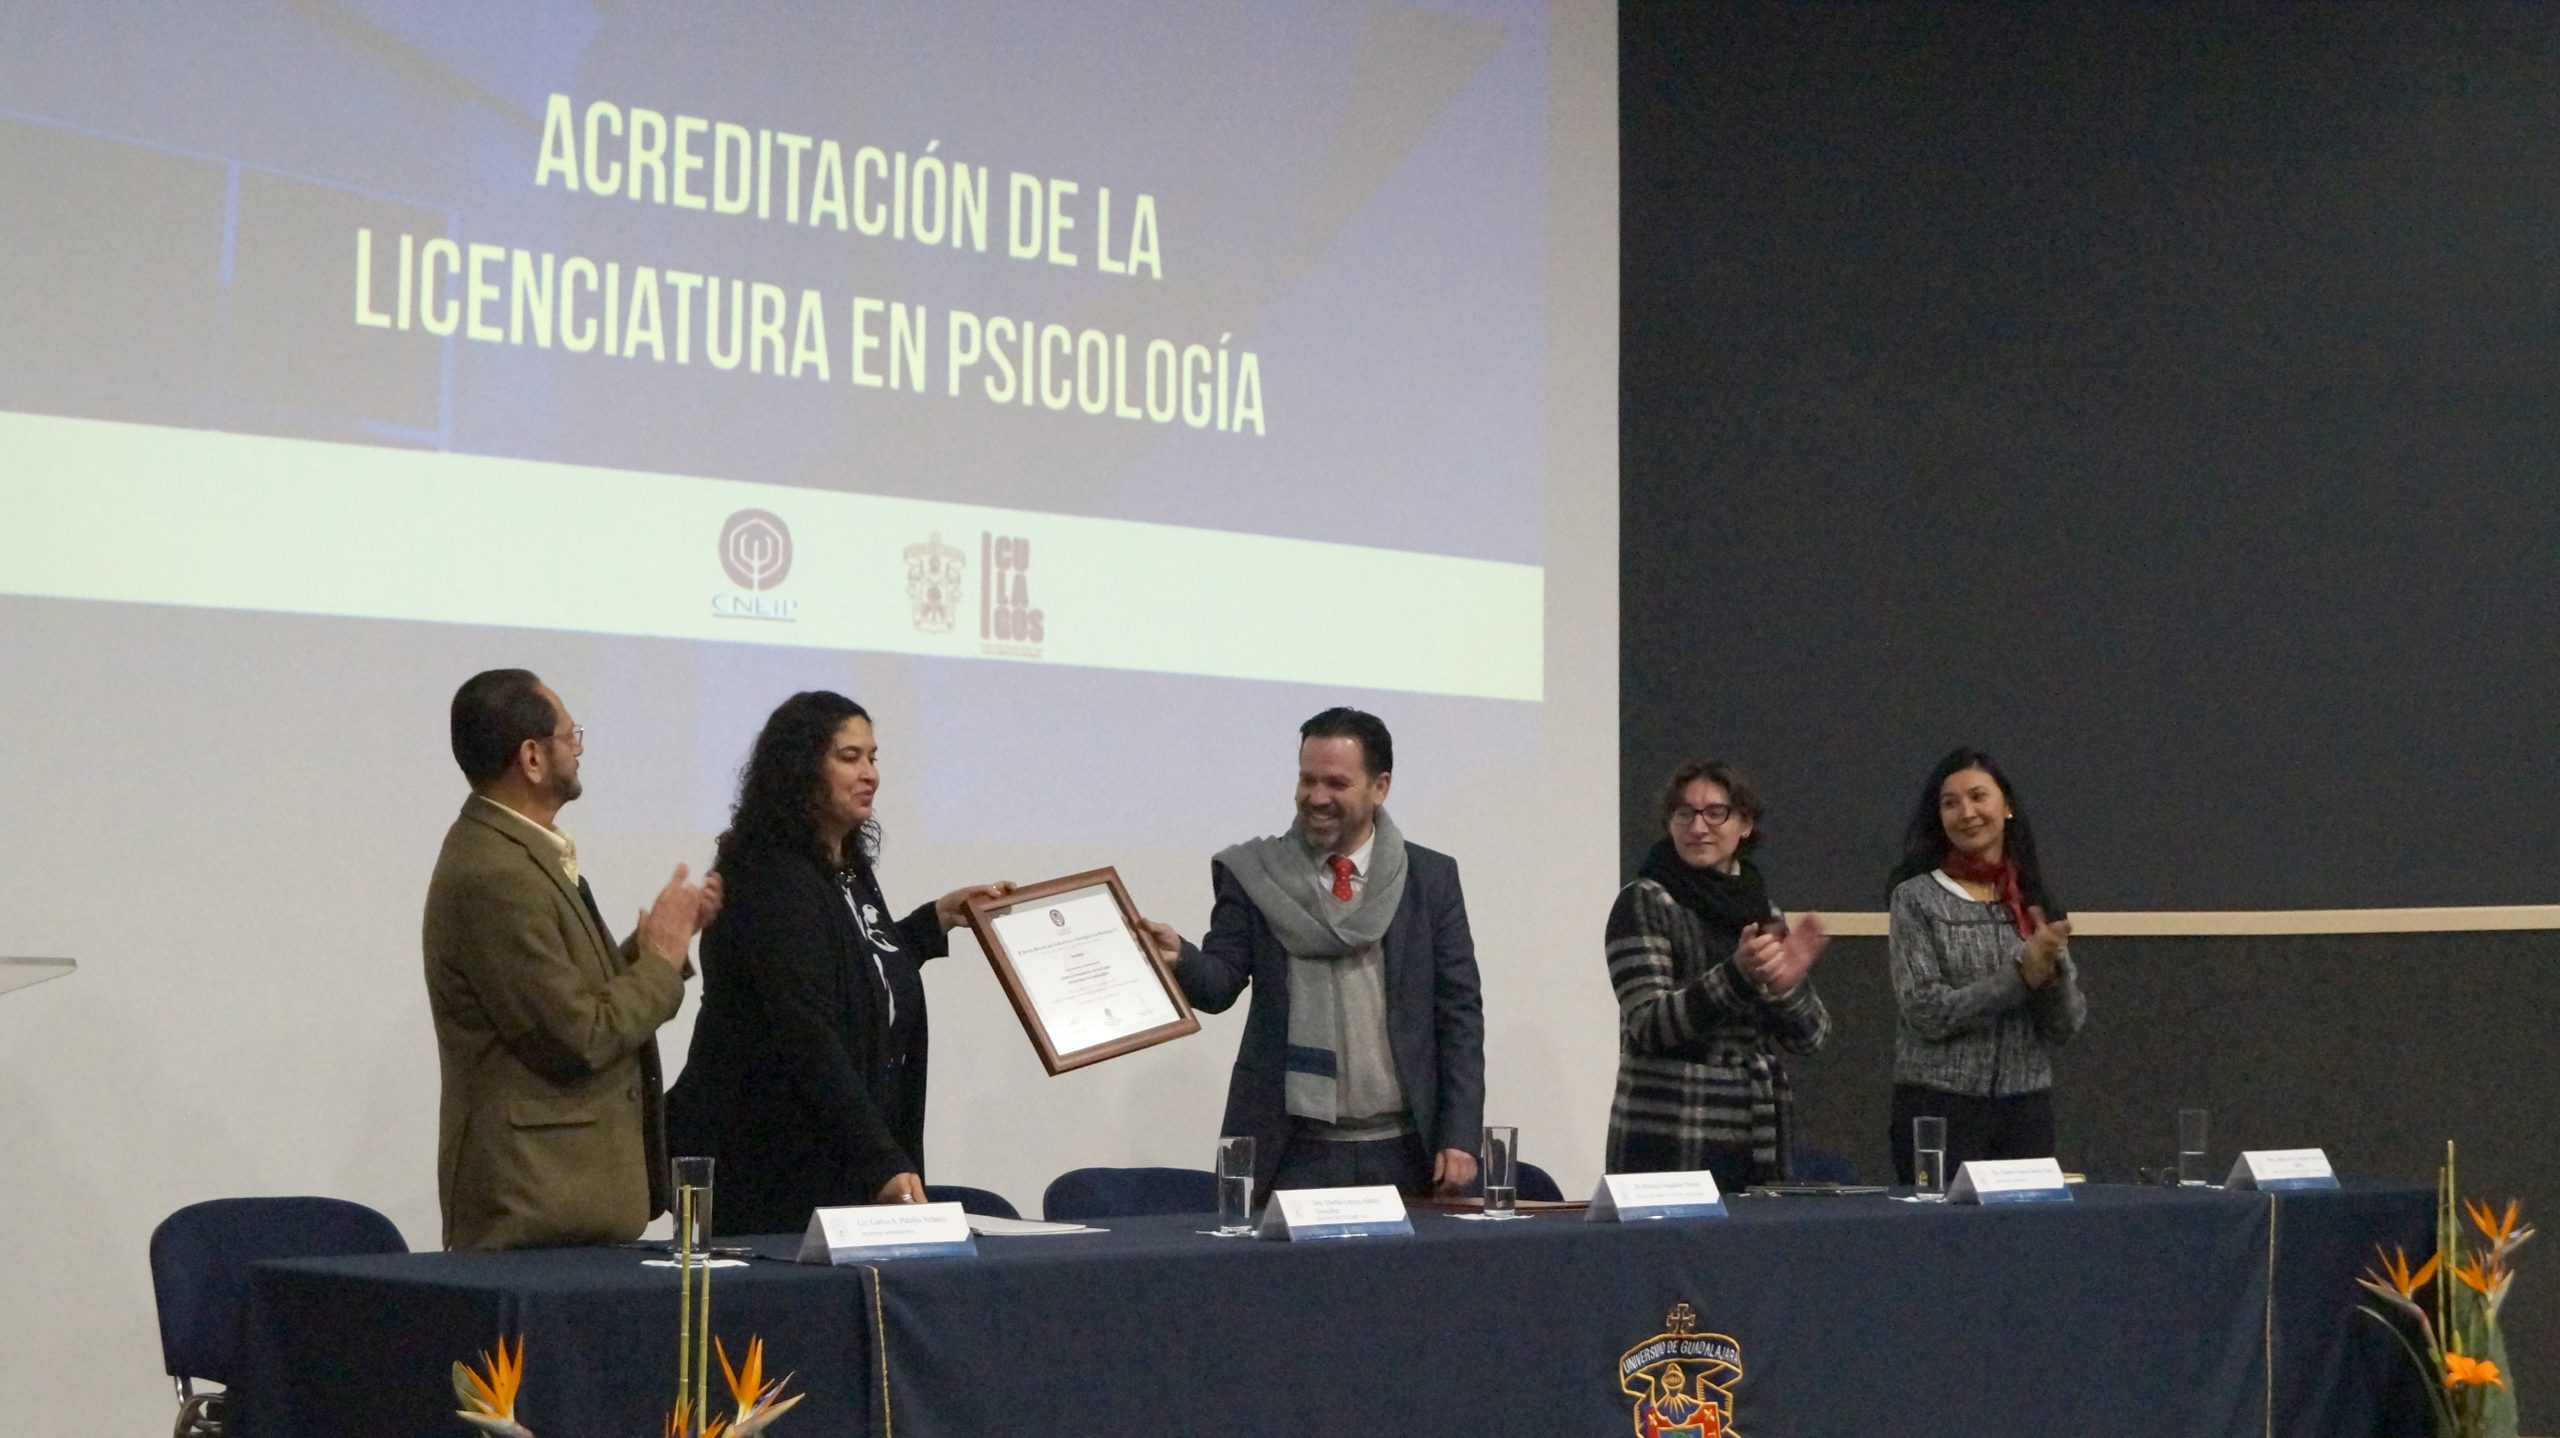 Photo of El CULagos acredita la licenciatura en Psicología